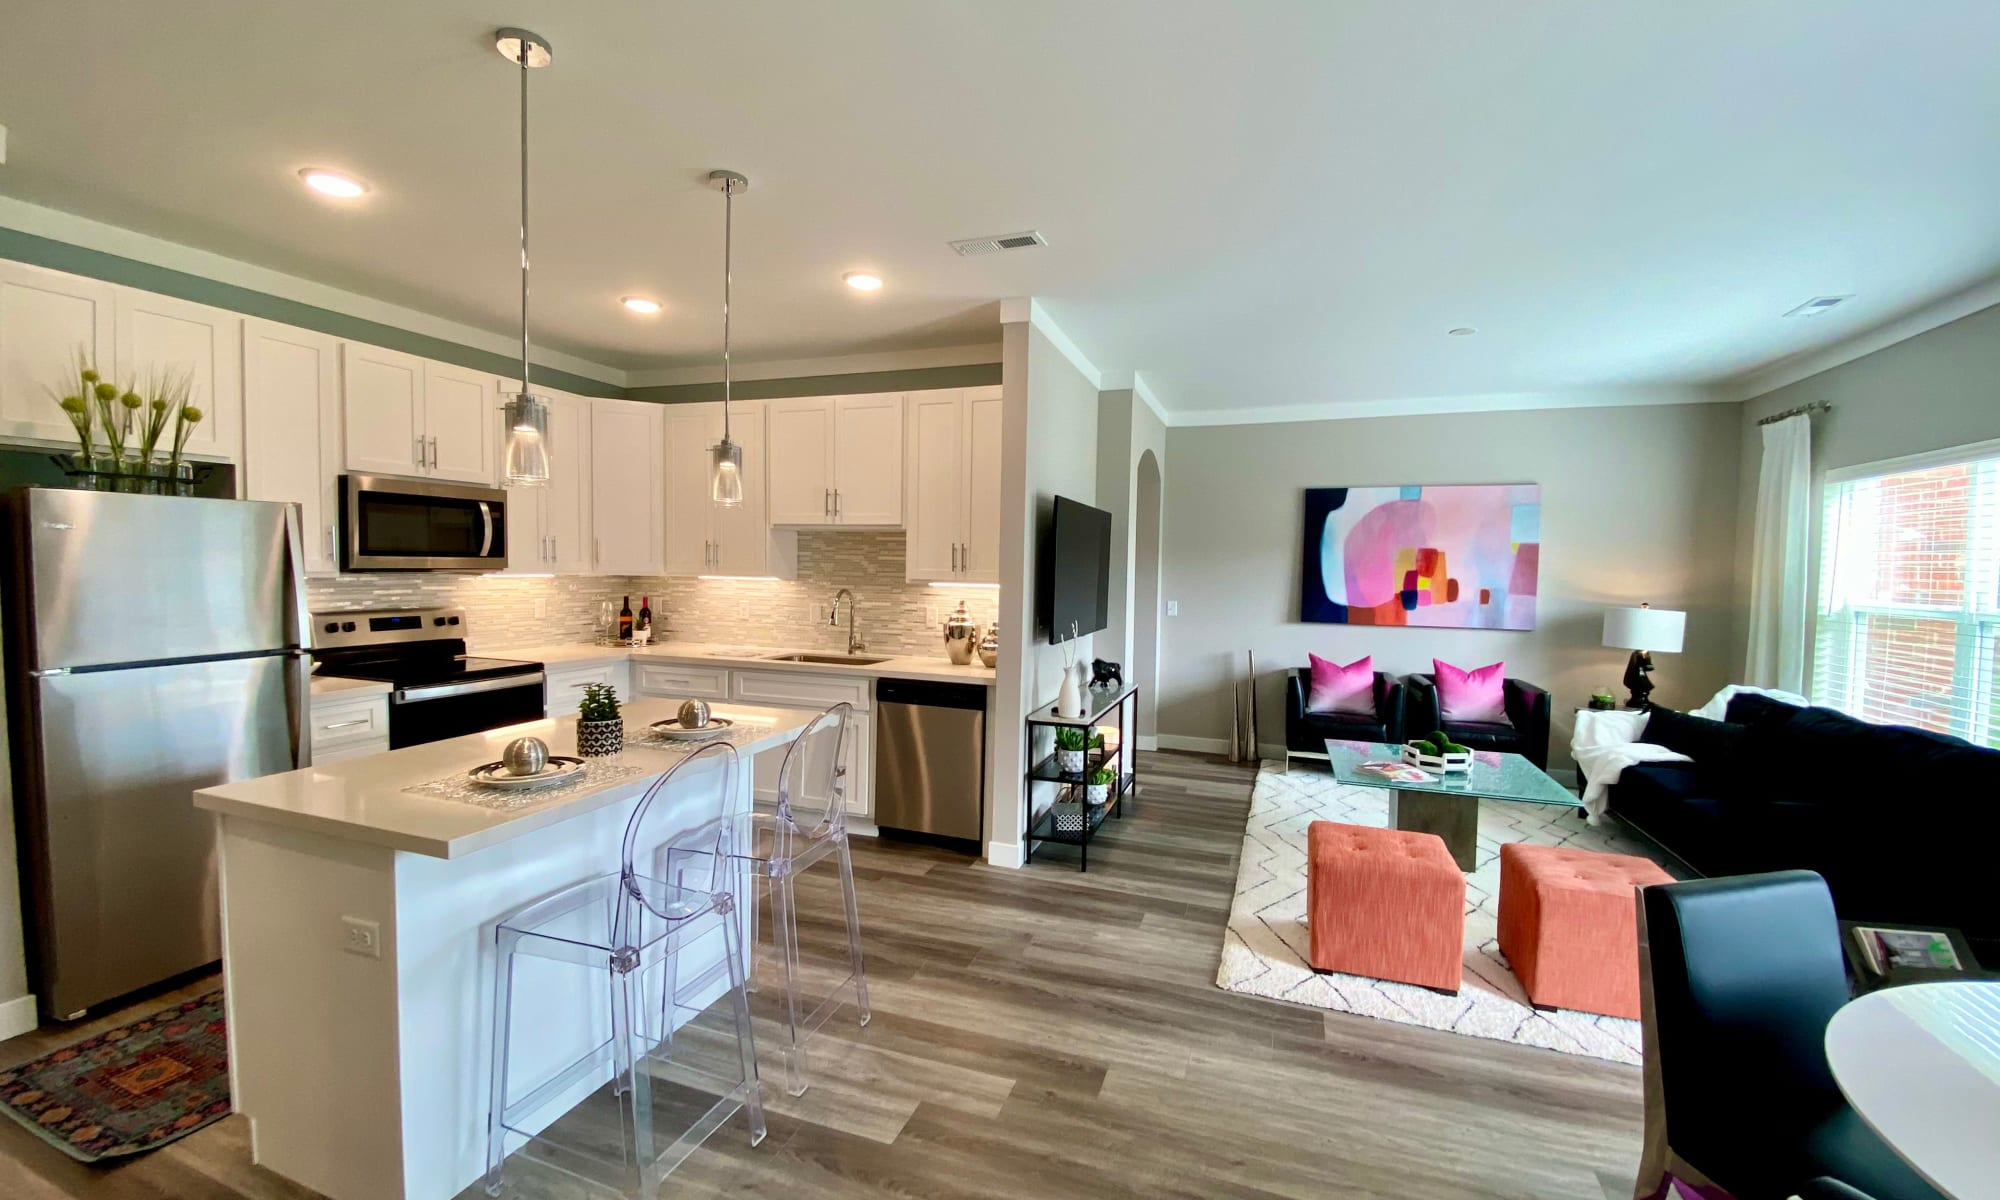 Apartments at Greyson on 27 in Nicholasville, Kentucky